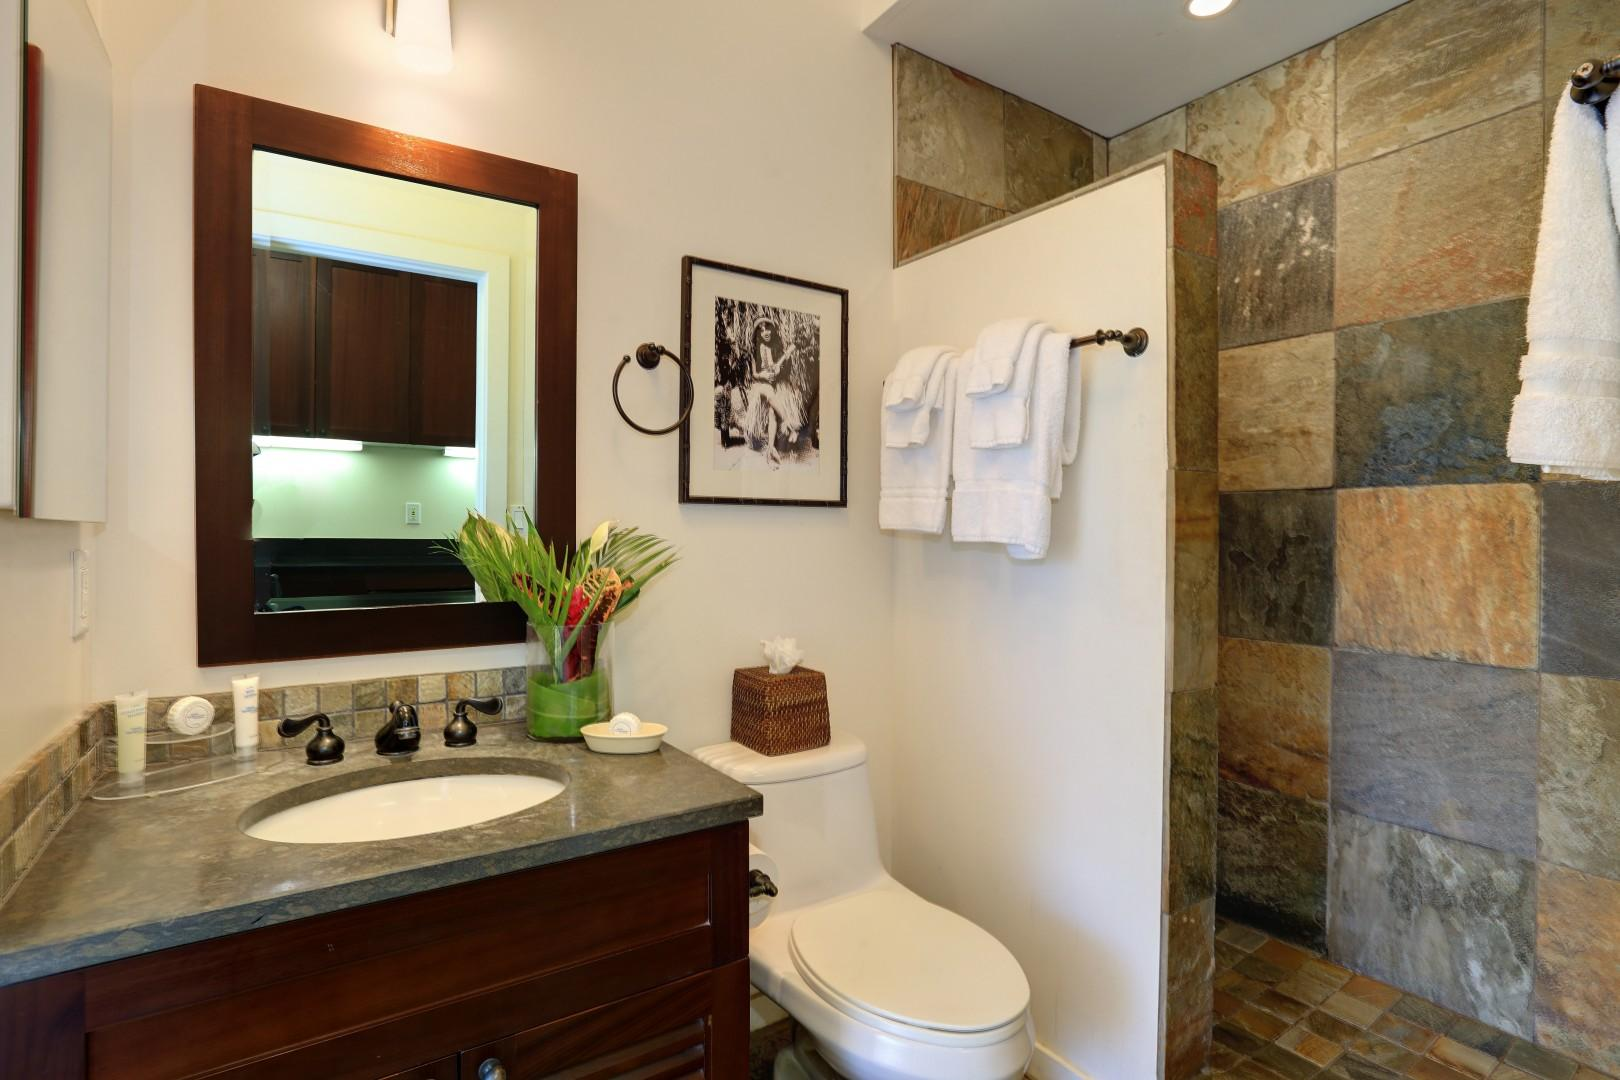 Large walk-in shower surrounded by natural stone